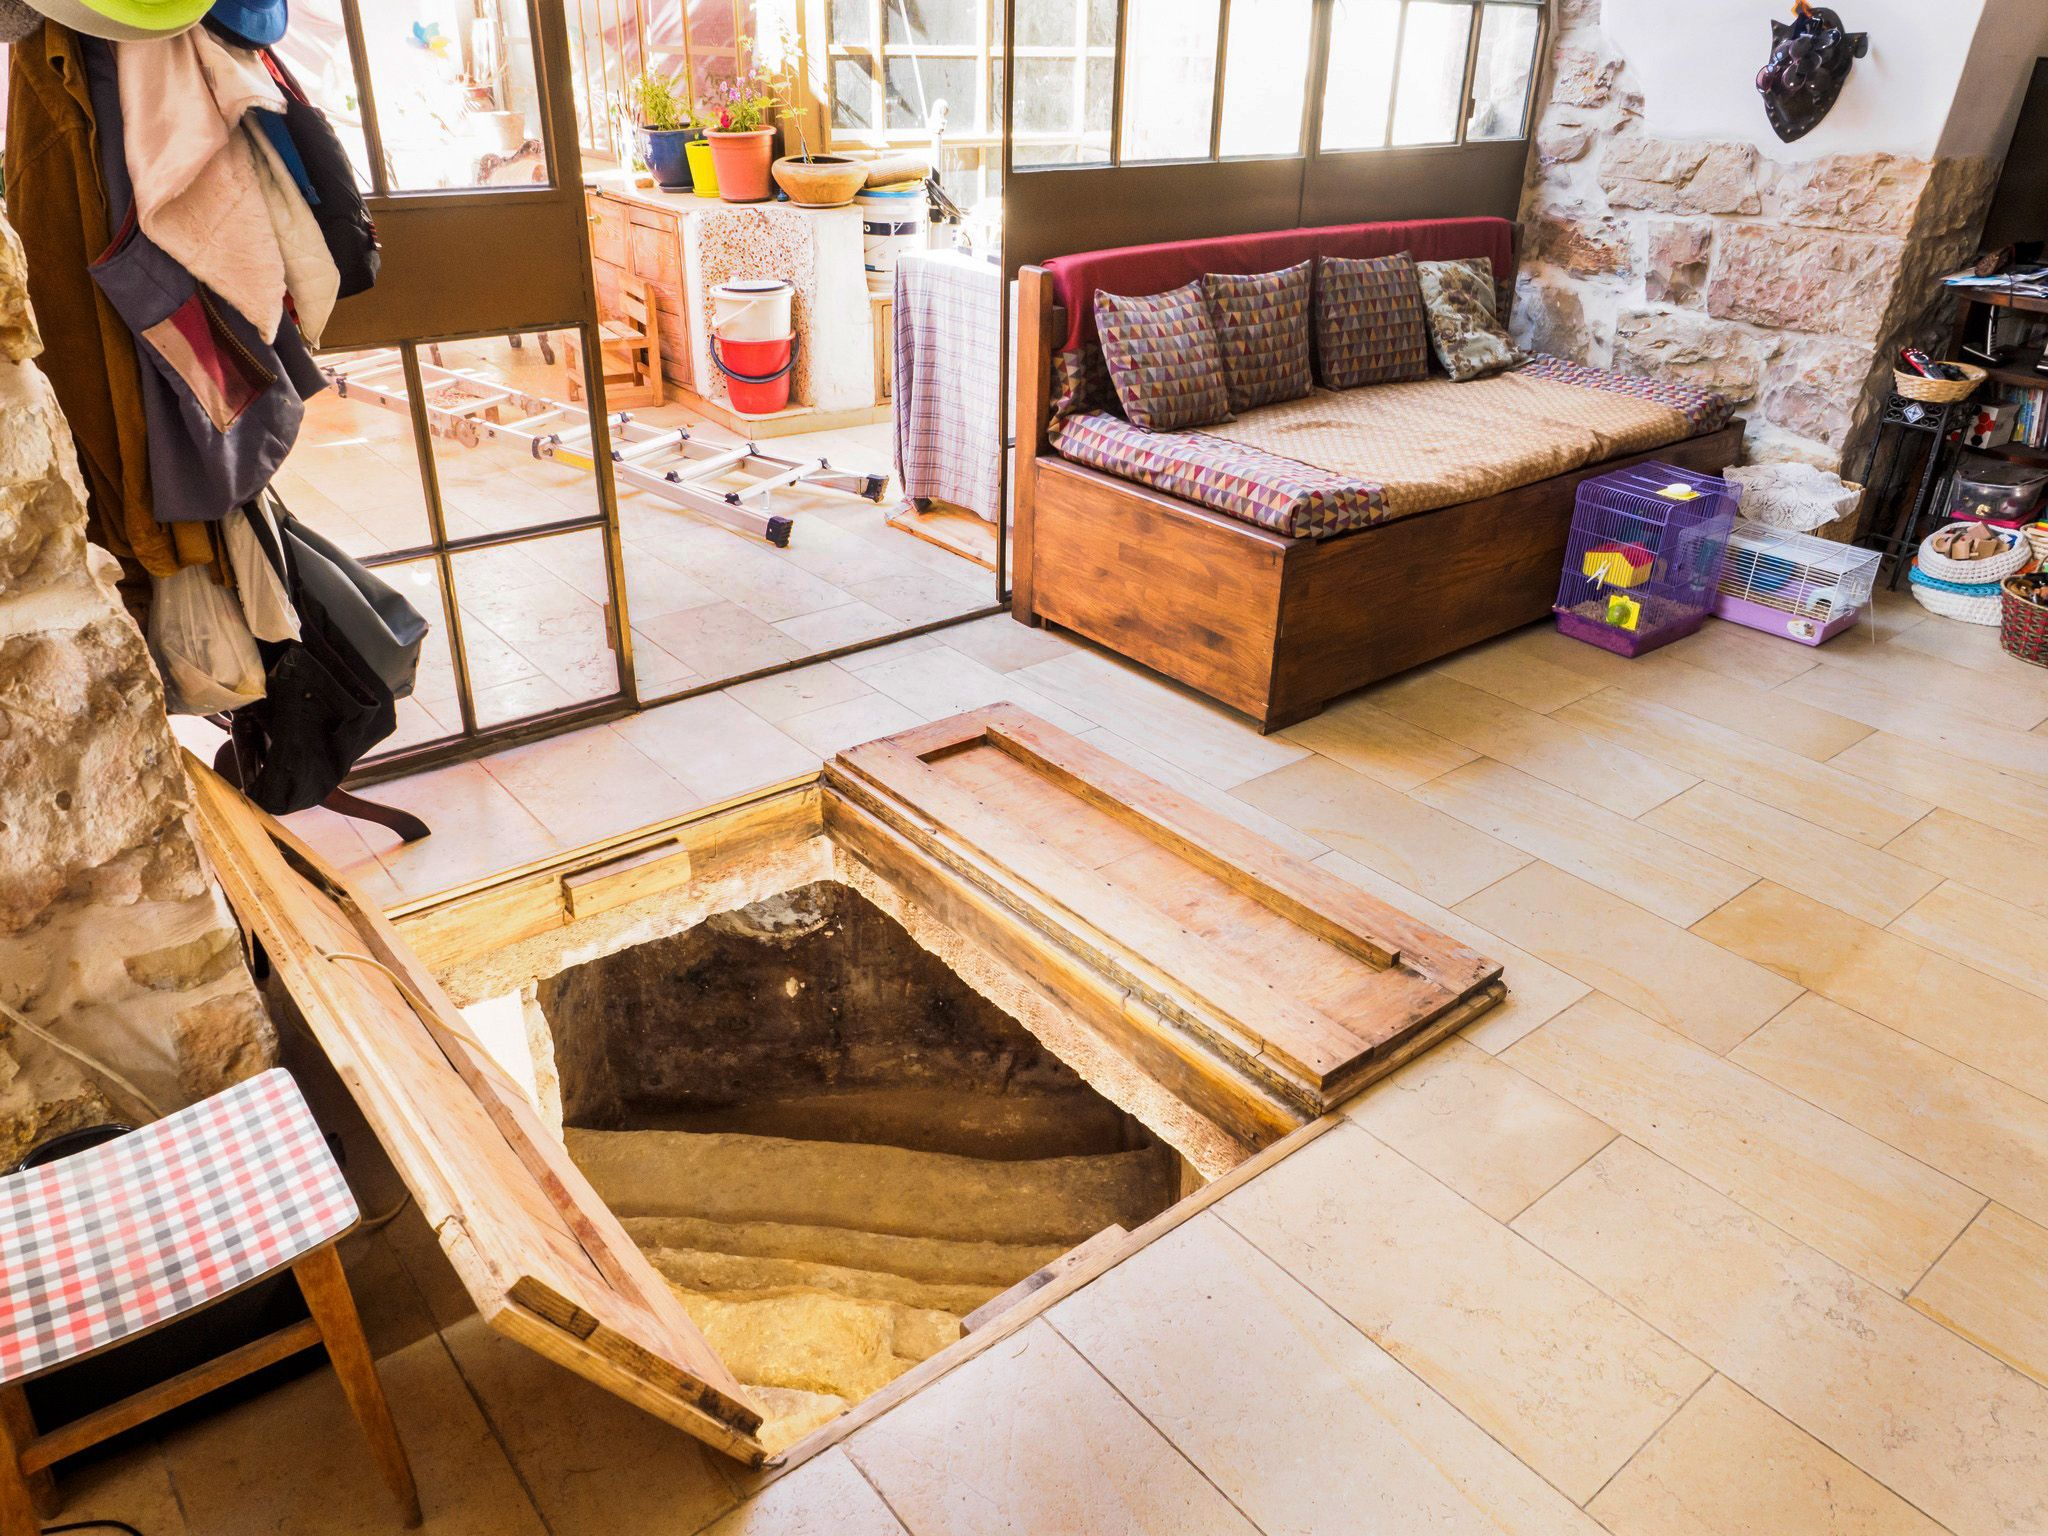 Bathroom Renovation Under 2000 i24news - 2,000 old jewish ritual bath found under a family's